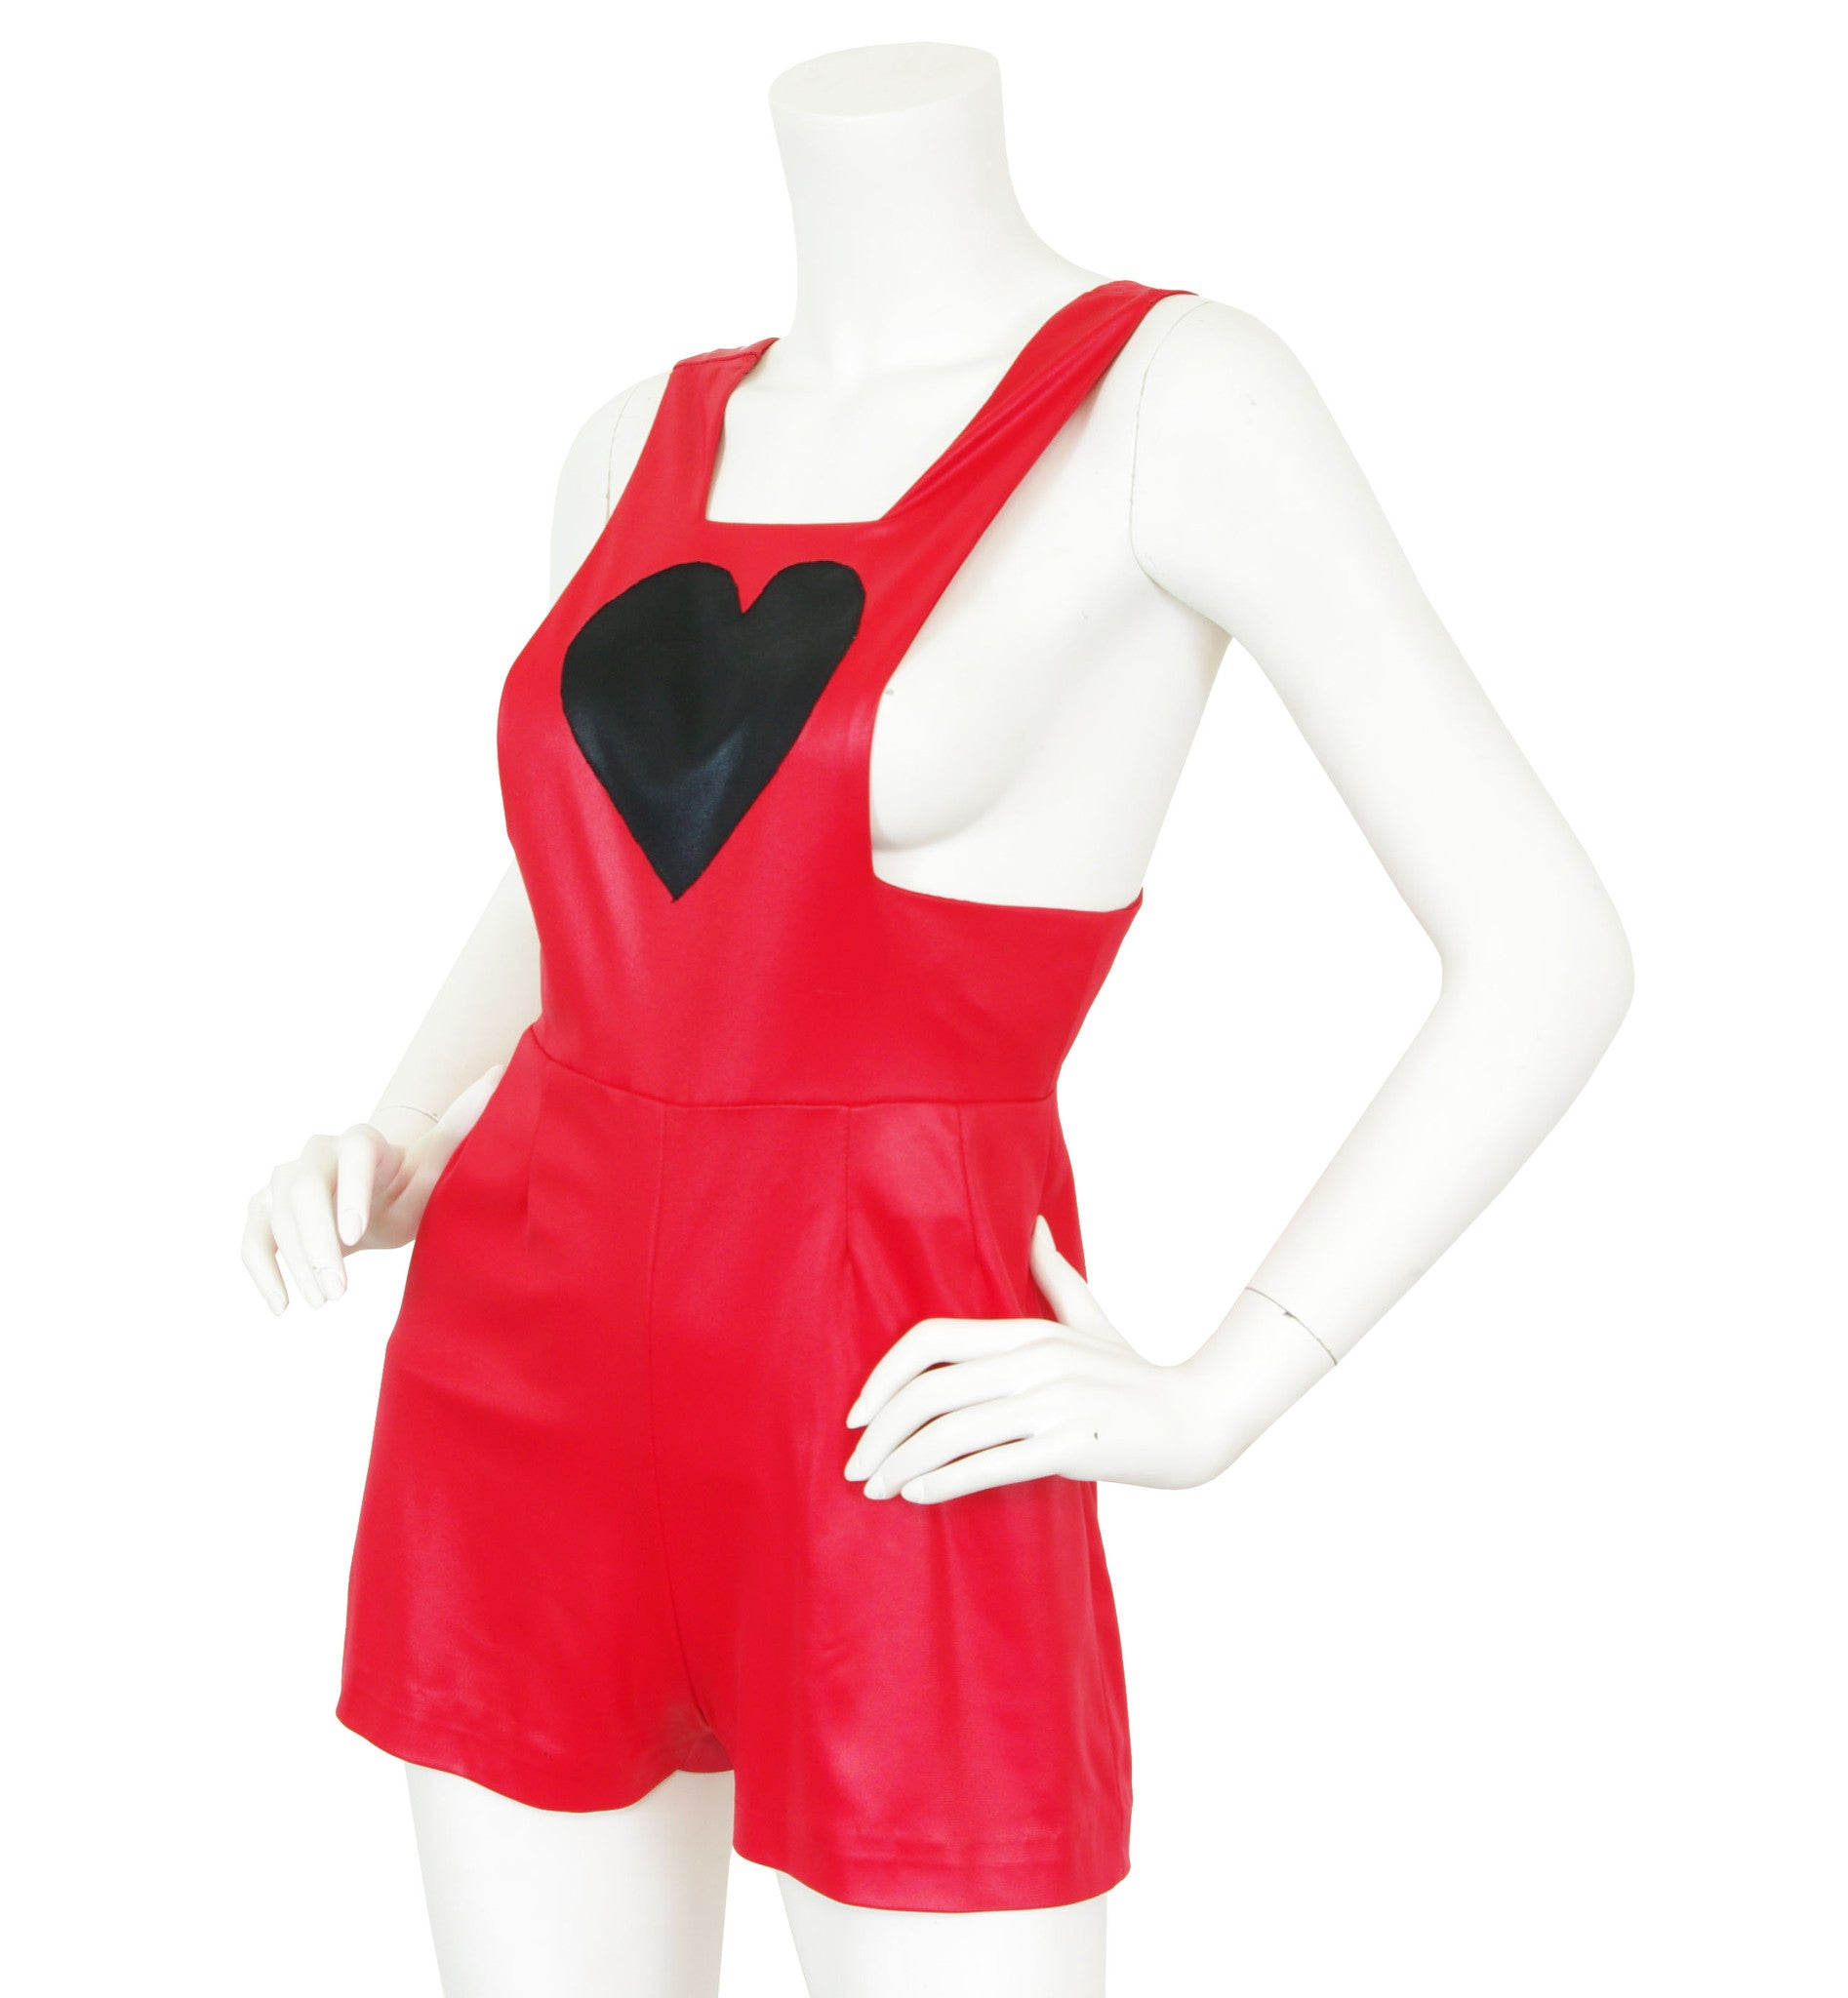 Red Heart Applique Wet Look Romper